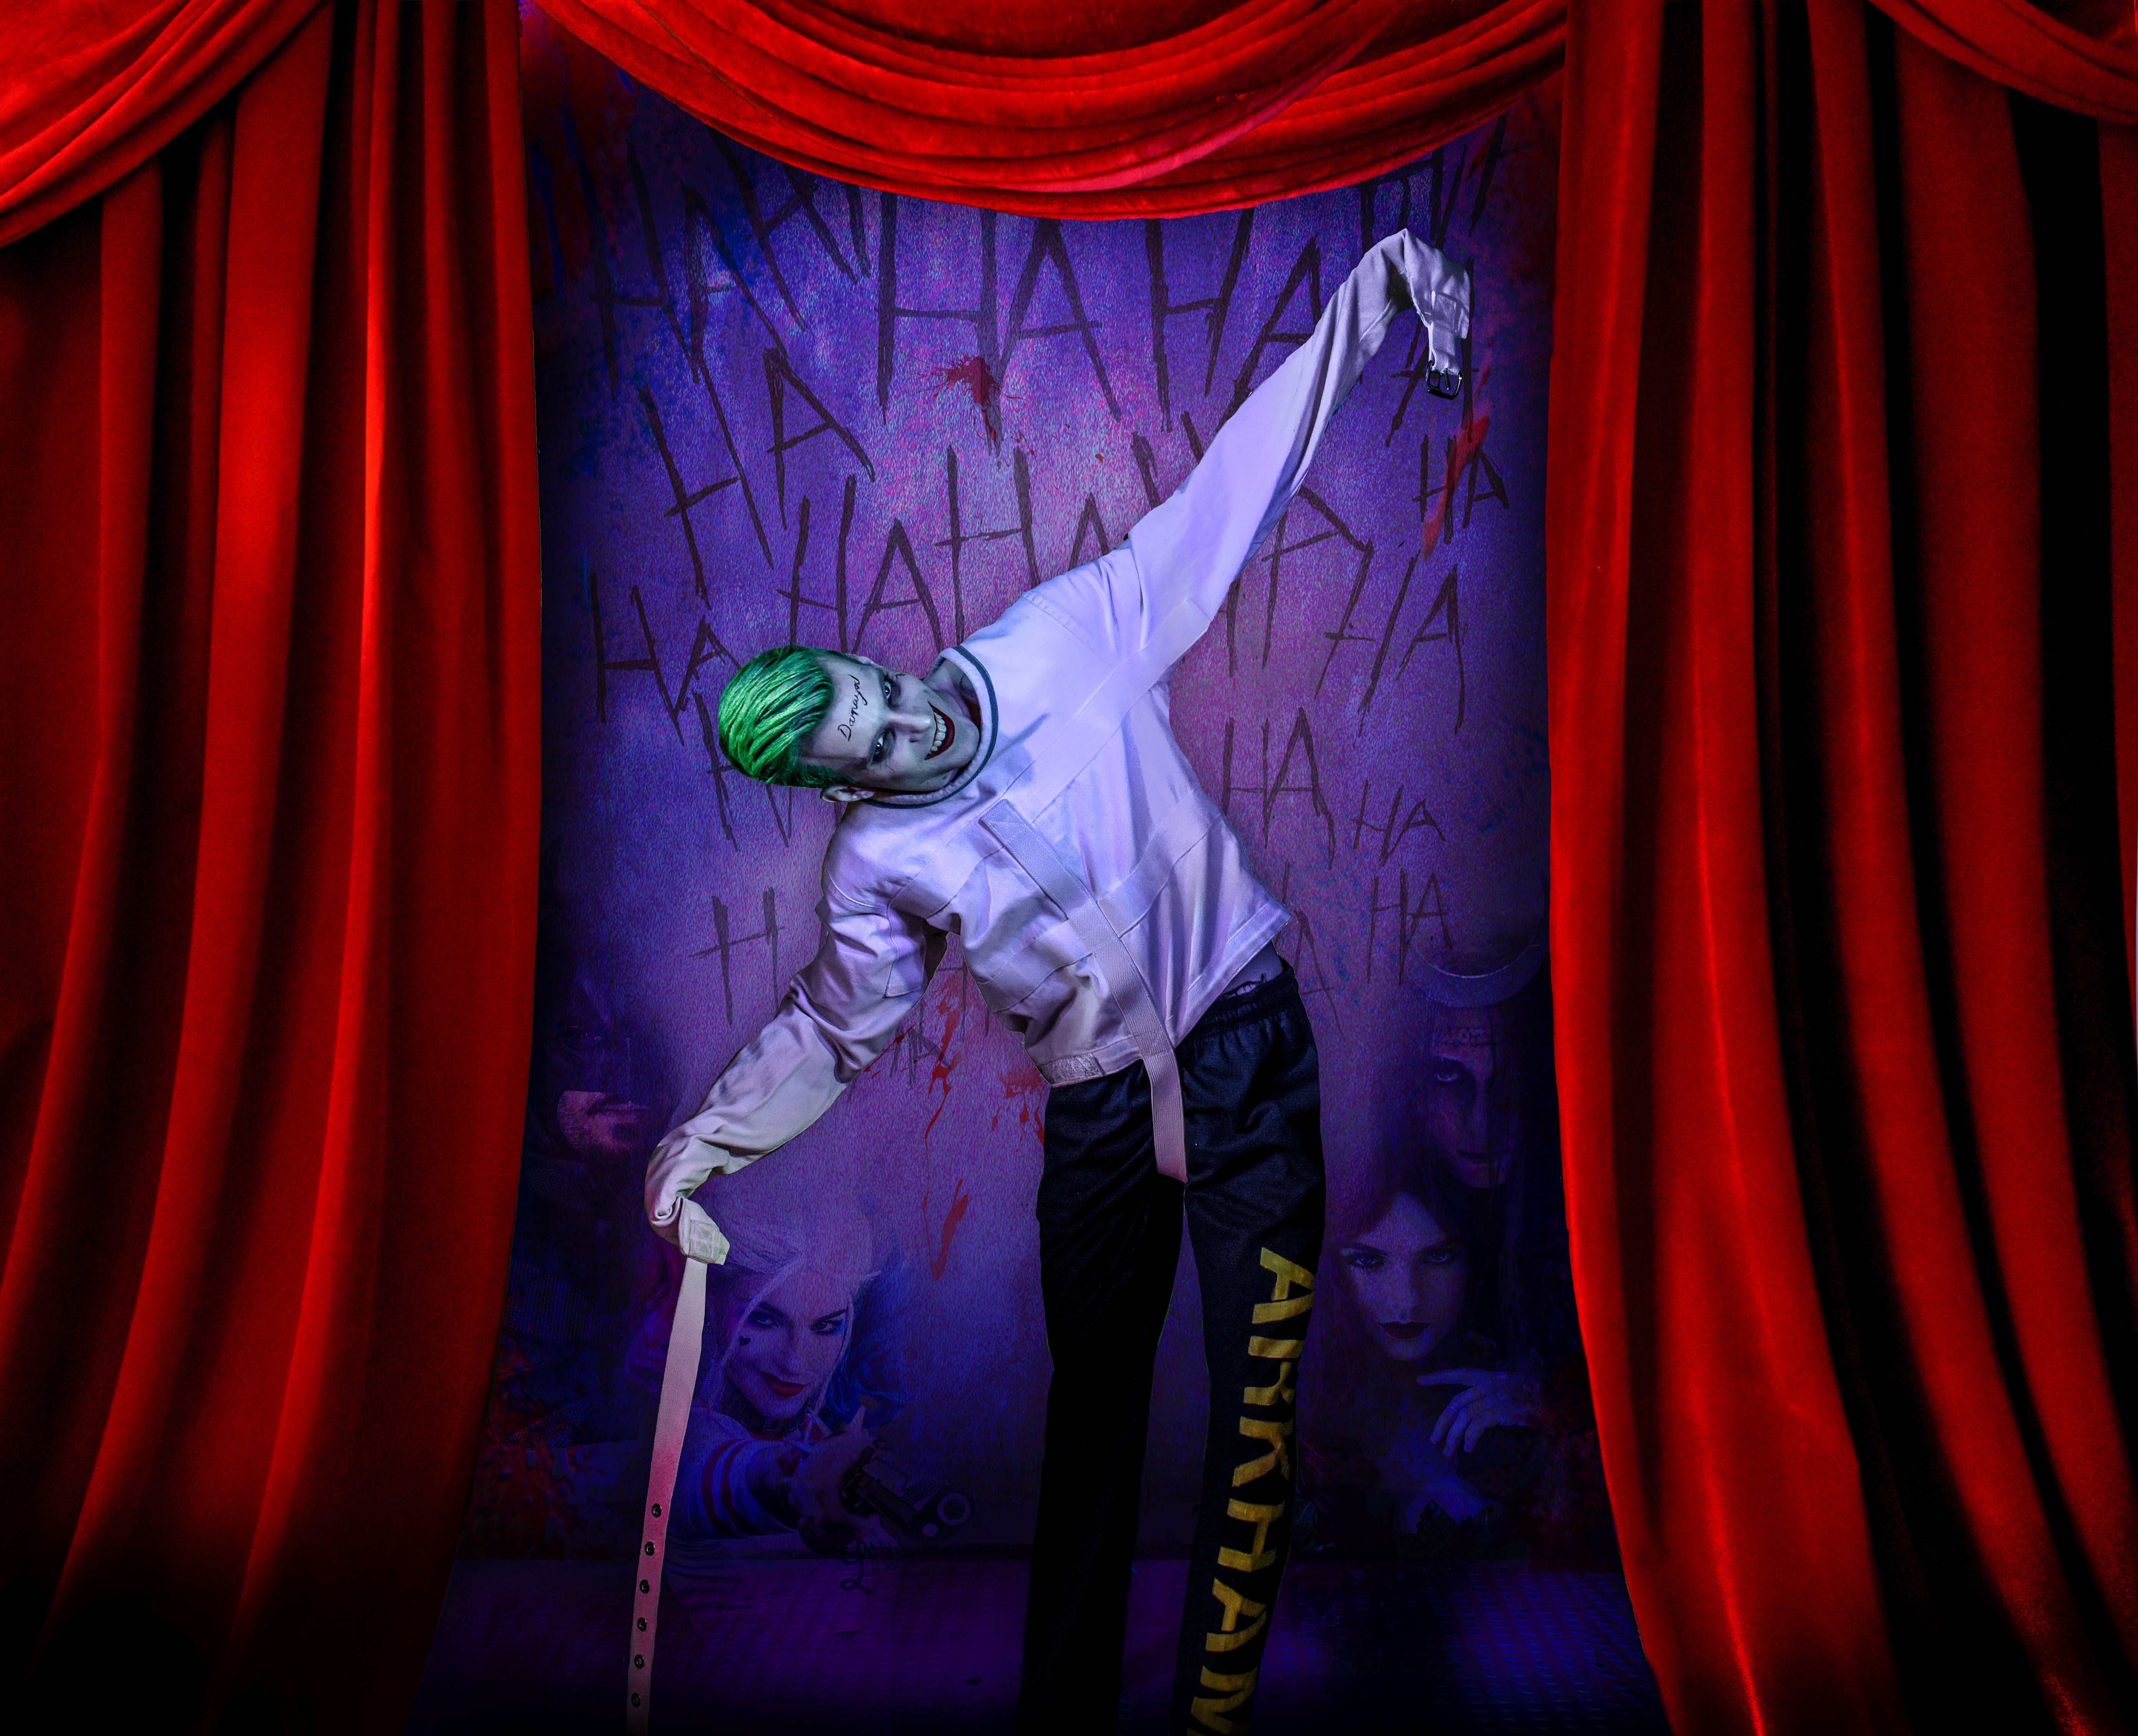 The Joker Suicide Squad Movie 2016 With Lushes Curtains